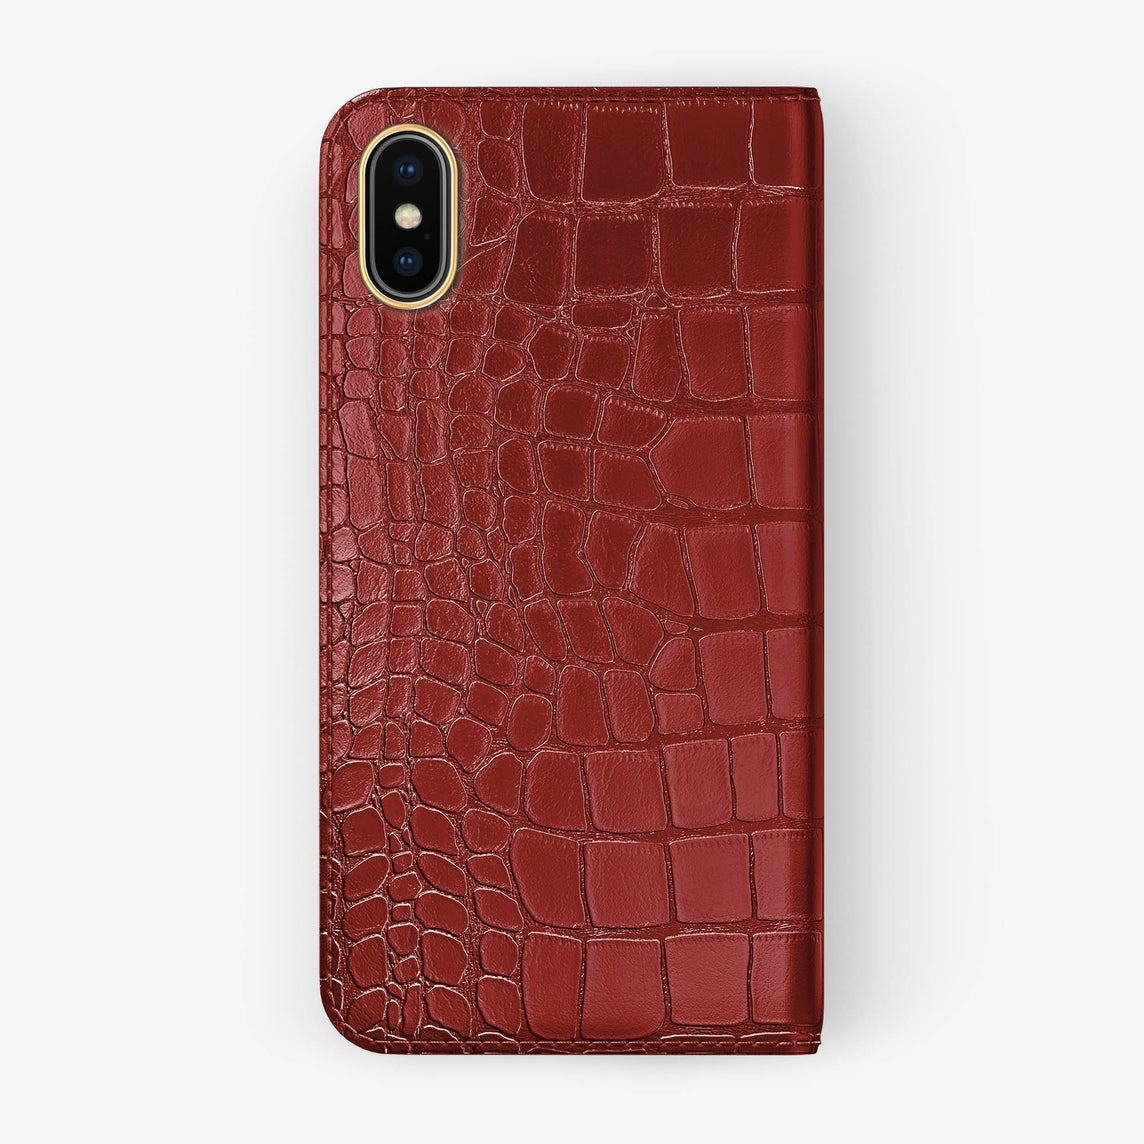 Red Alligator iPhone Folio Case for iPhone X finishing yellow gold - Hadoro Luxury Cases